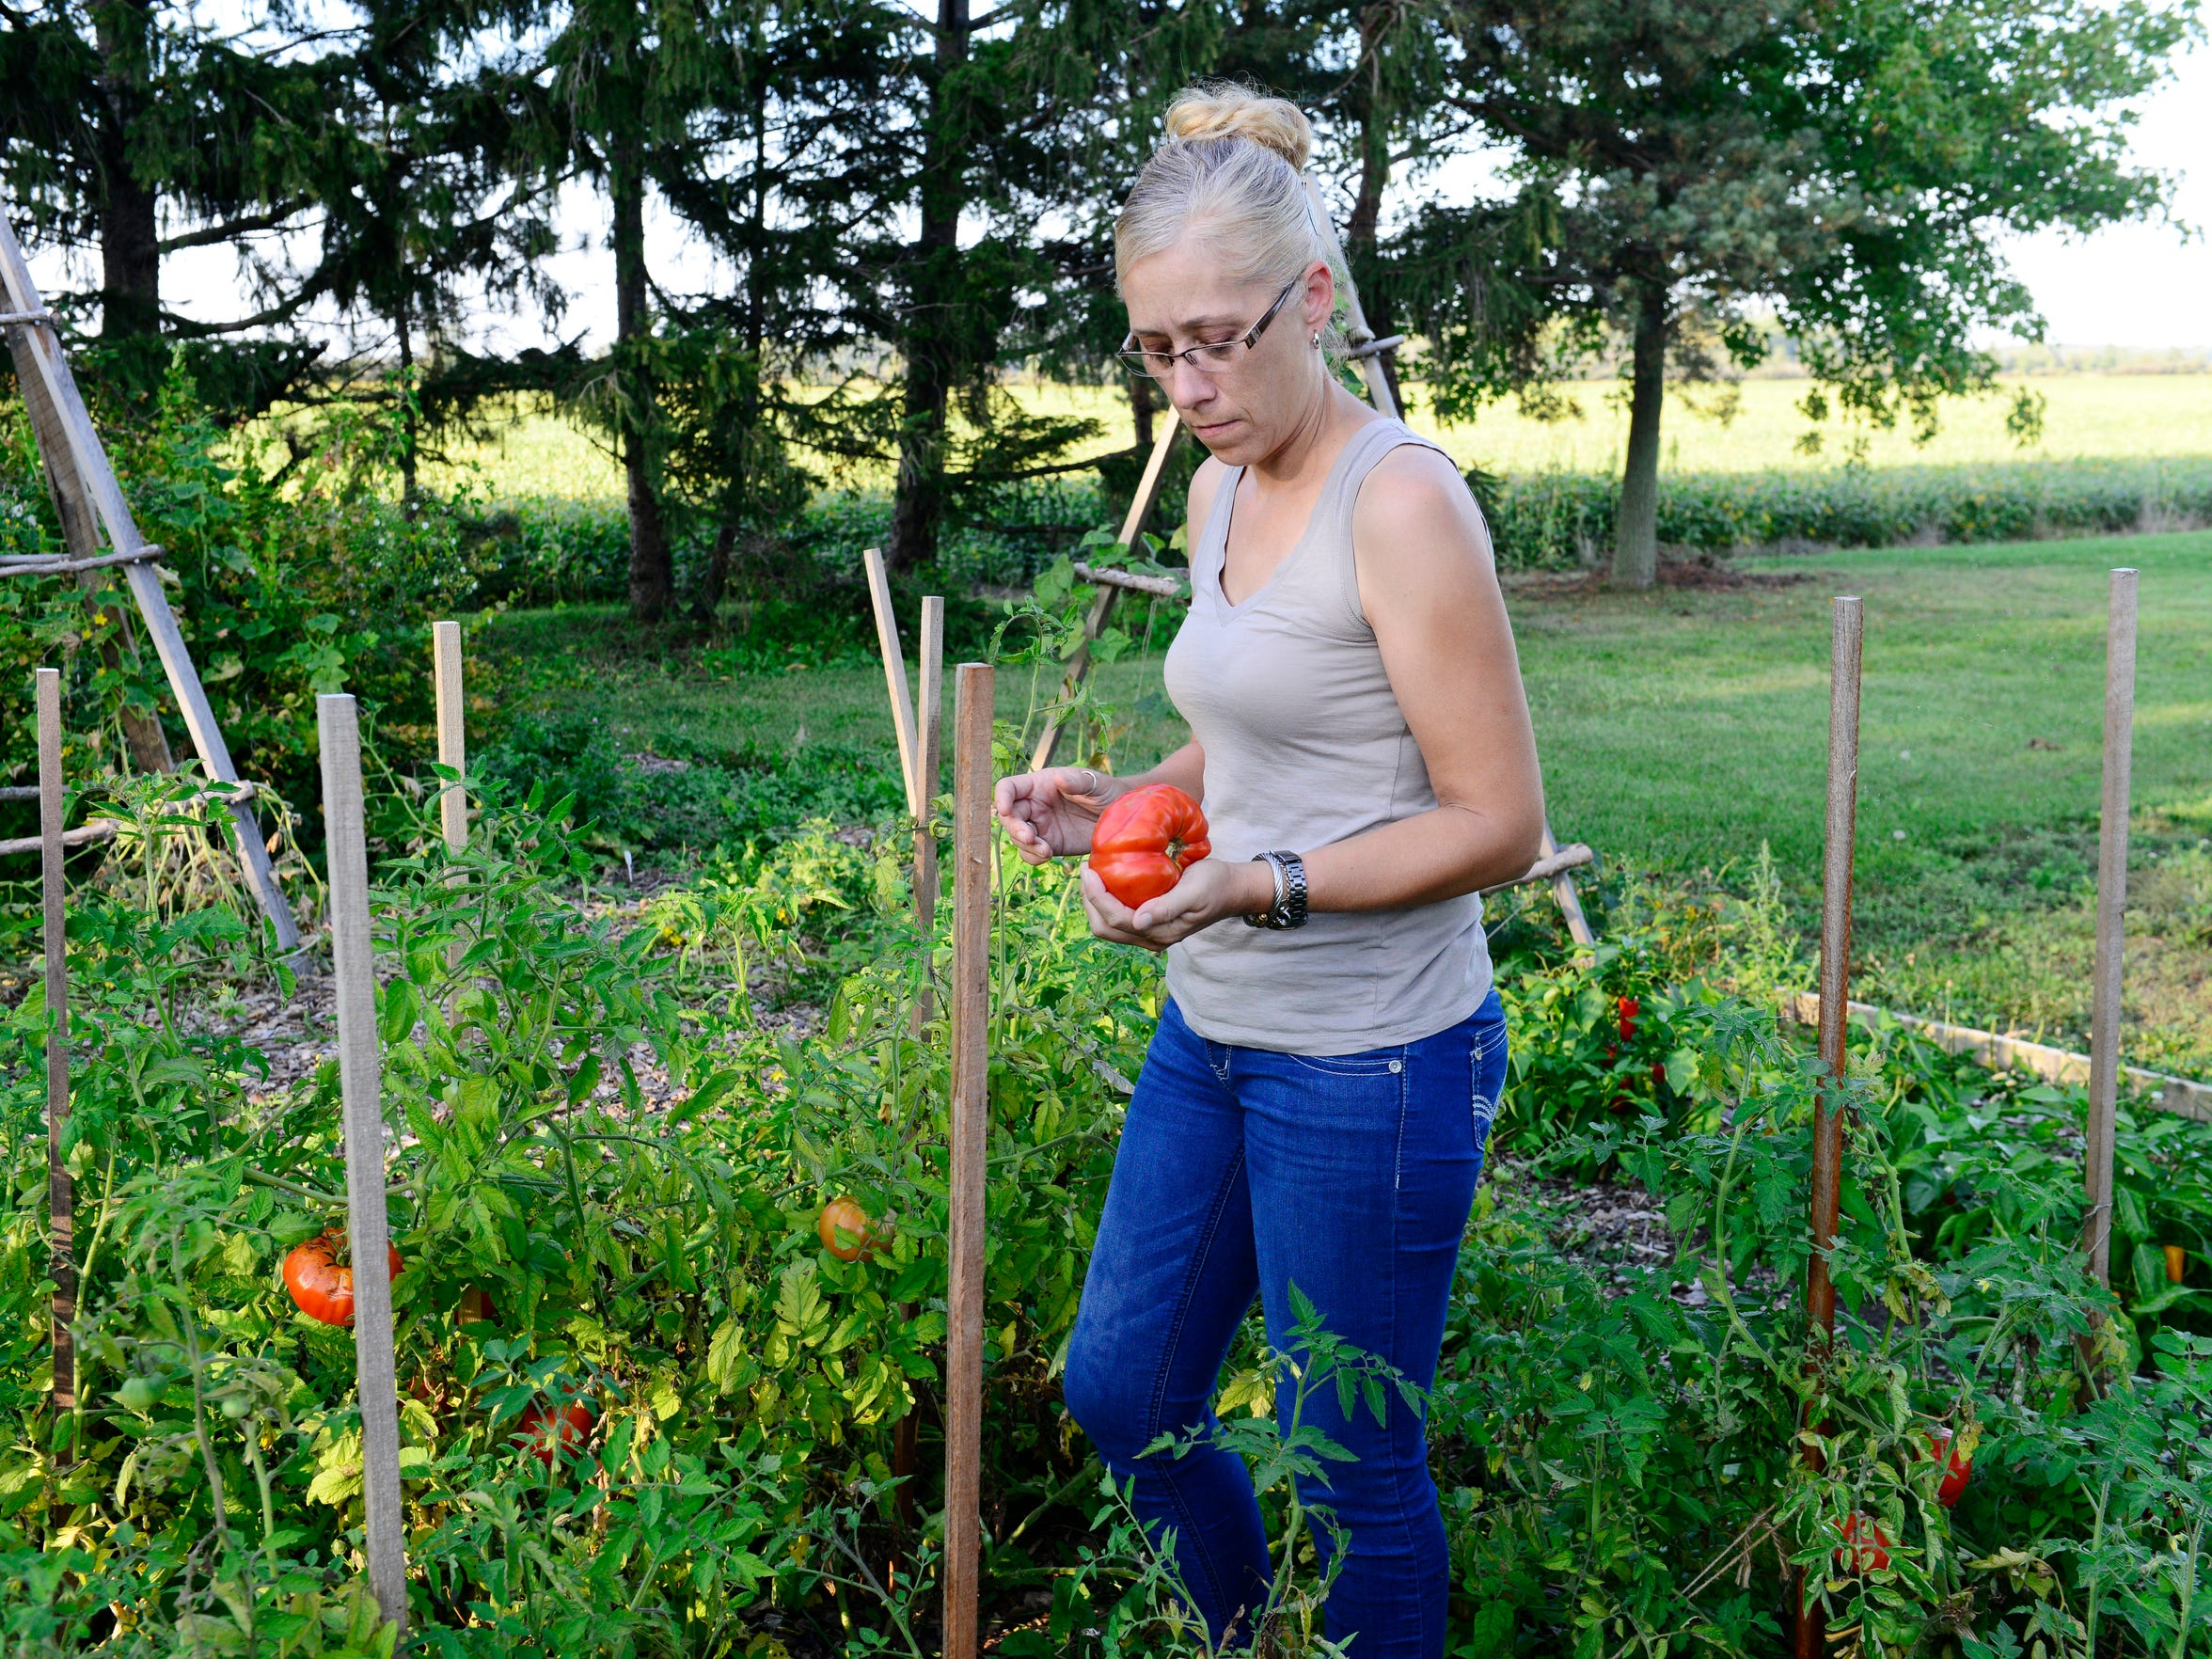 Angel Wadsworth picks a non-GMO tomato she grew in her backyard. She does not drink the water because of health concerns over contaminants that are in the residual sludge being dumped at the nearby Rocky Ridge Development LLC quarry. She still uses the well water for bathing, dishwashing and to give to the animals to drink.